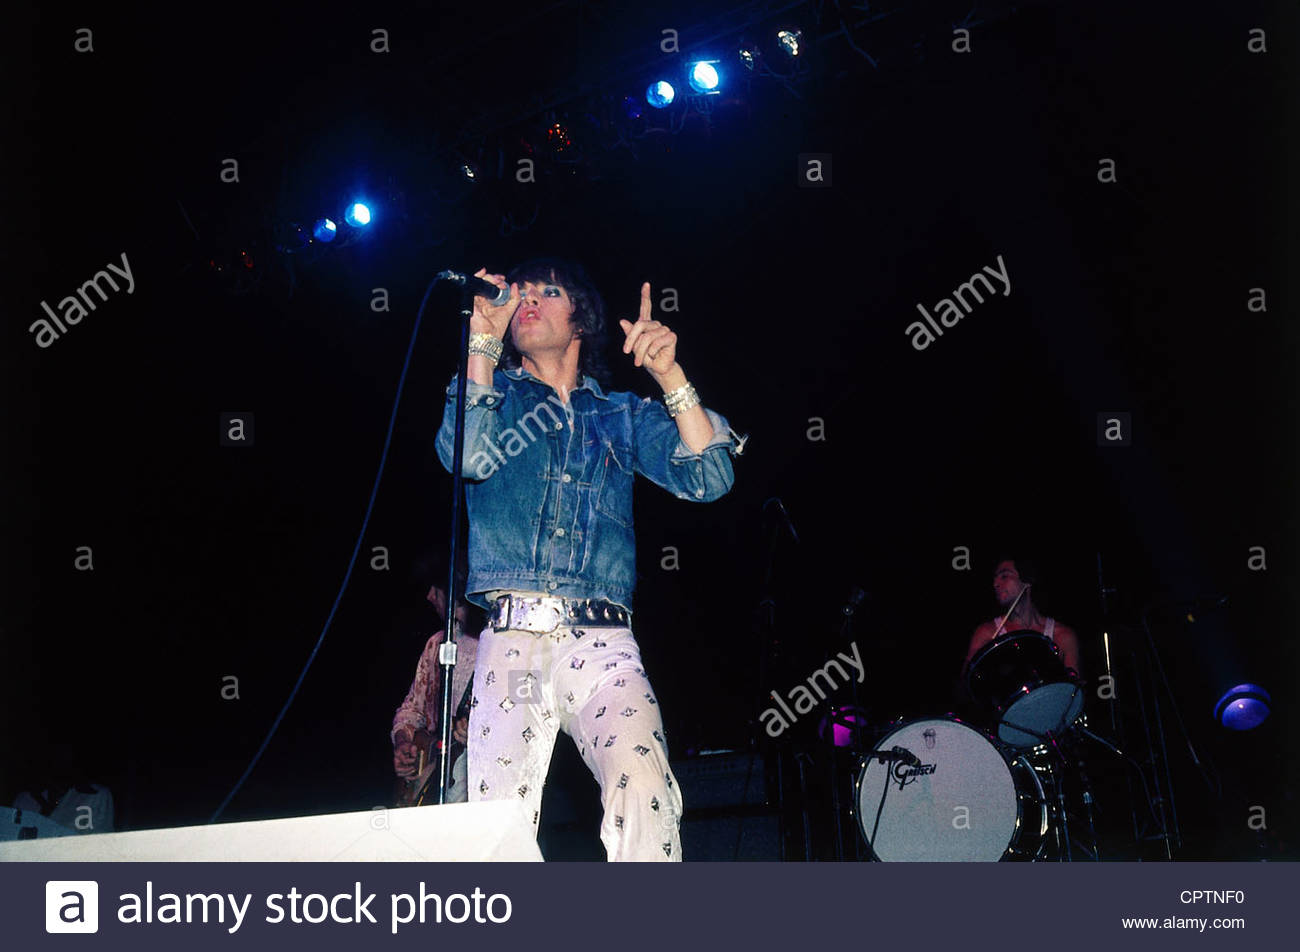 Rolling Stones, British rock group, Mick Jagger and Charlie Watts during a concert, 1970s, jeans jacket, musicians, - Stock Image